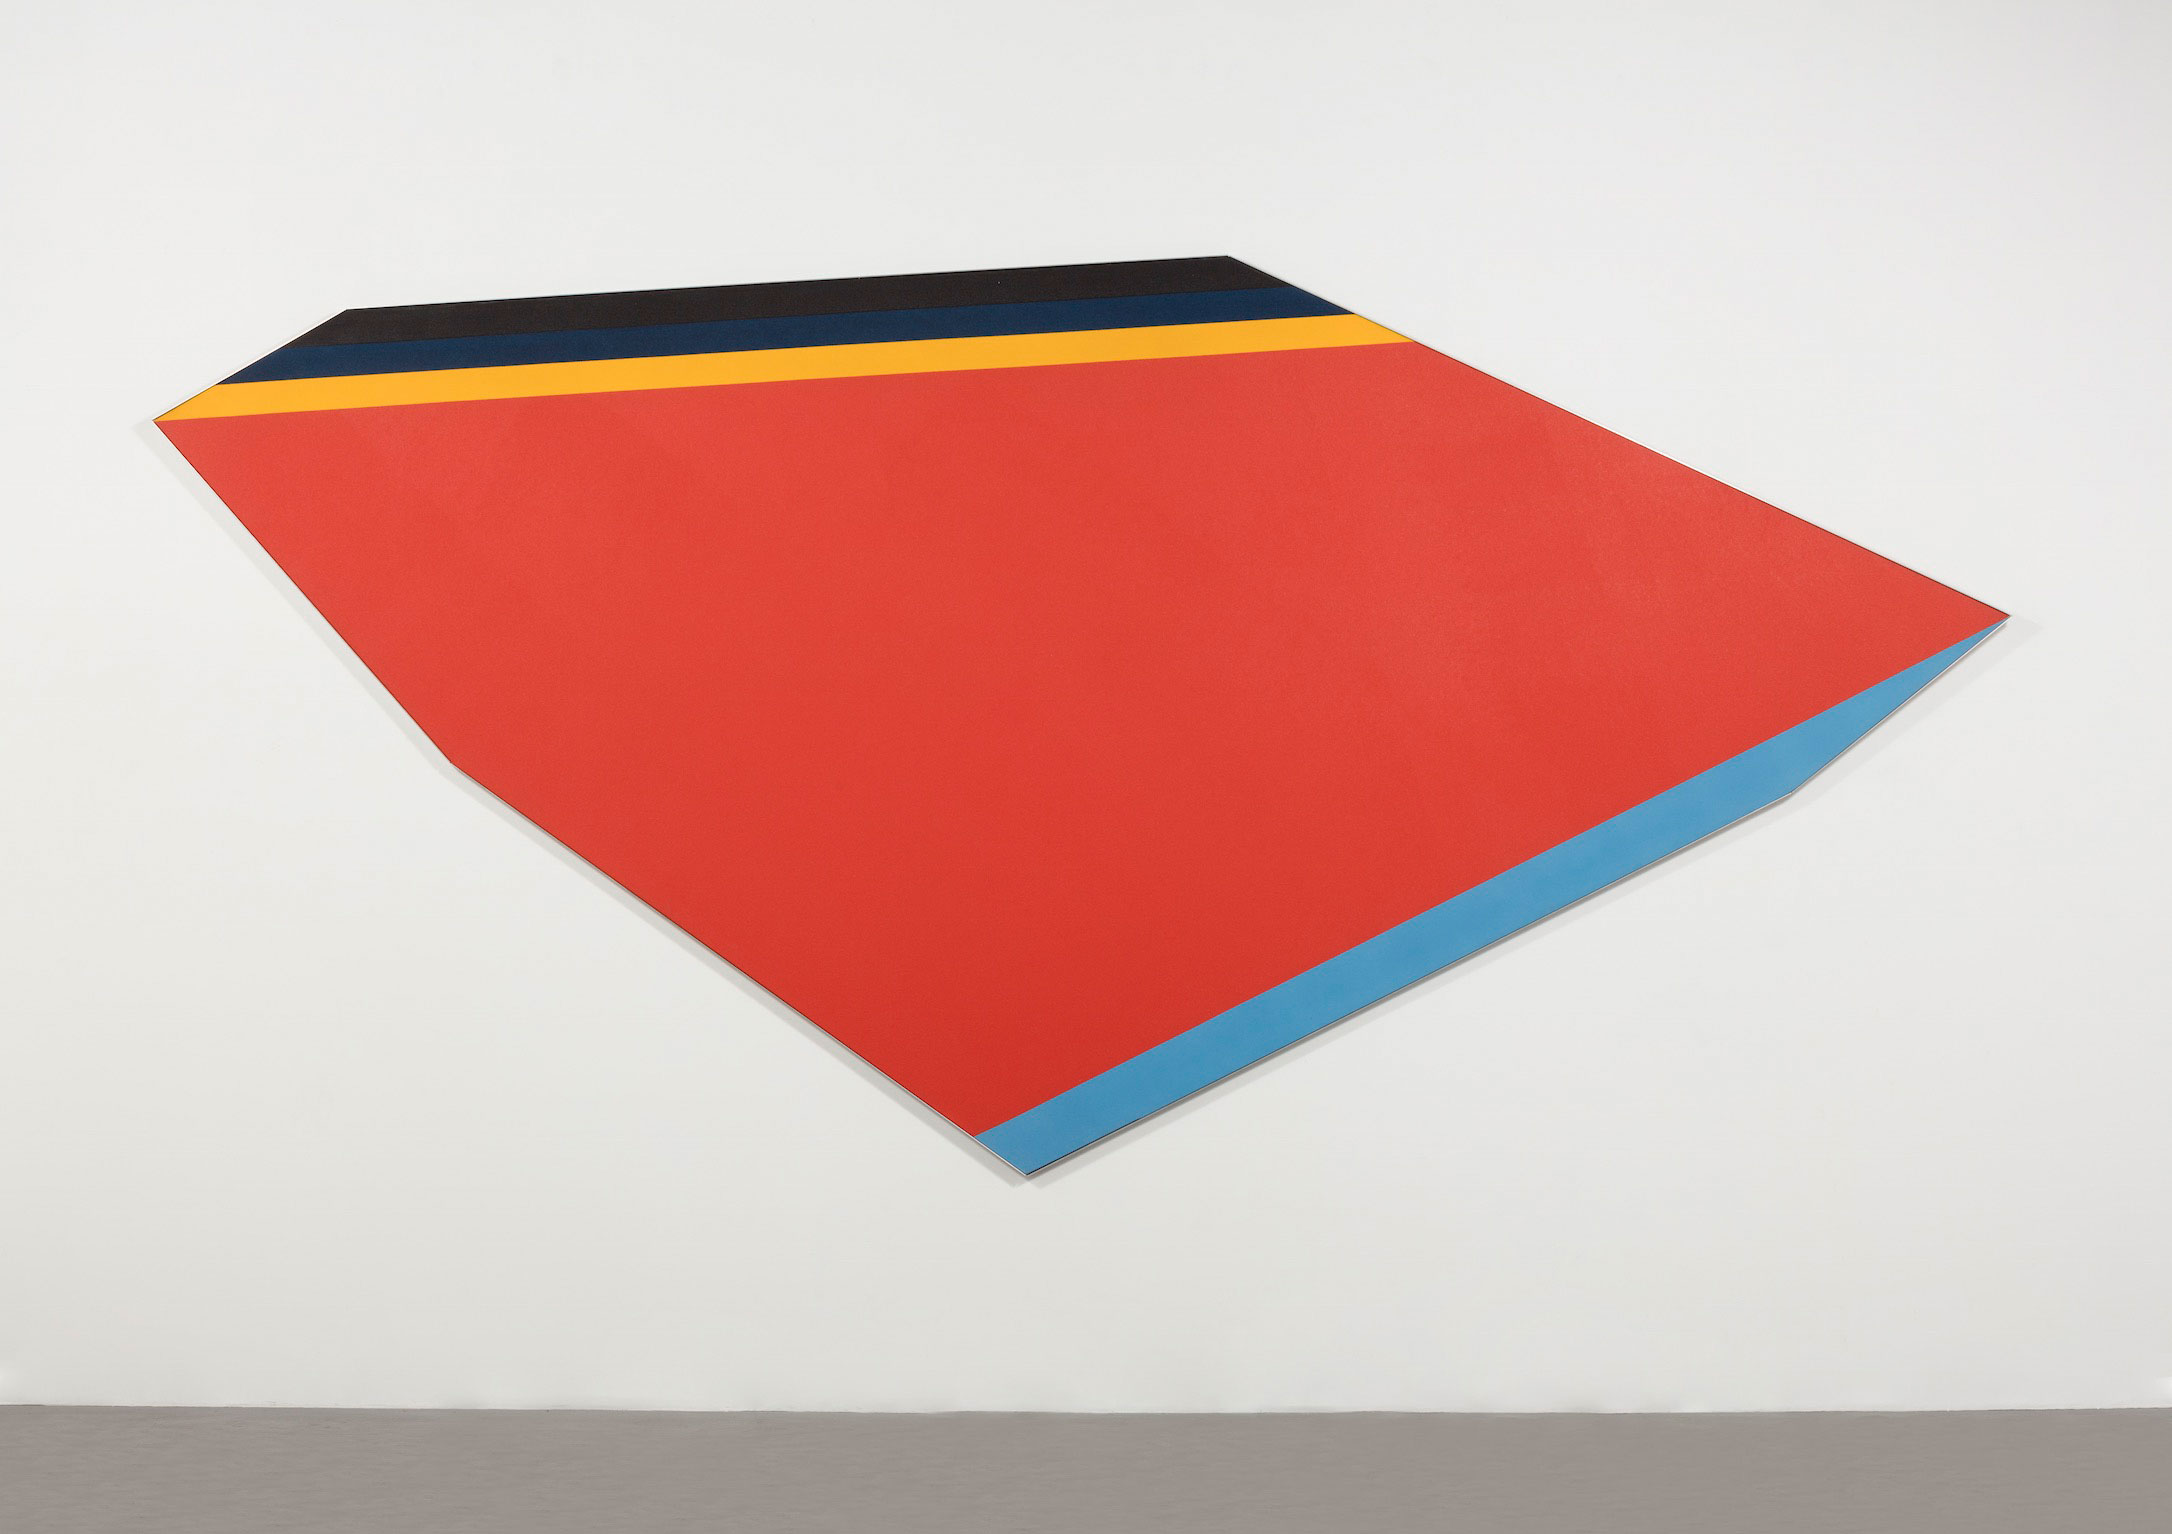 Kenneth Noland Adjoin, 1980 Acrylic on canvas 89 7/8 x 178 3/4 inches (228.3 x 454 cm)  © Estate of Kenneth Noland/Licensed by VAGA, New York, NY